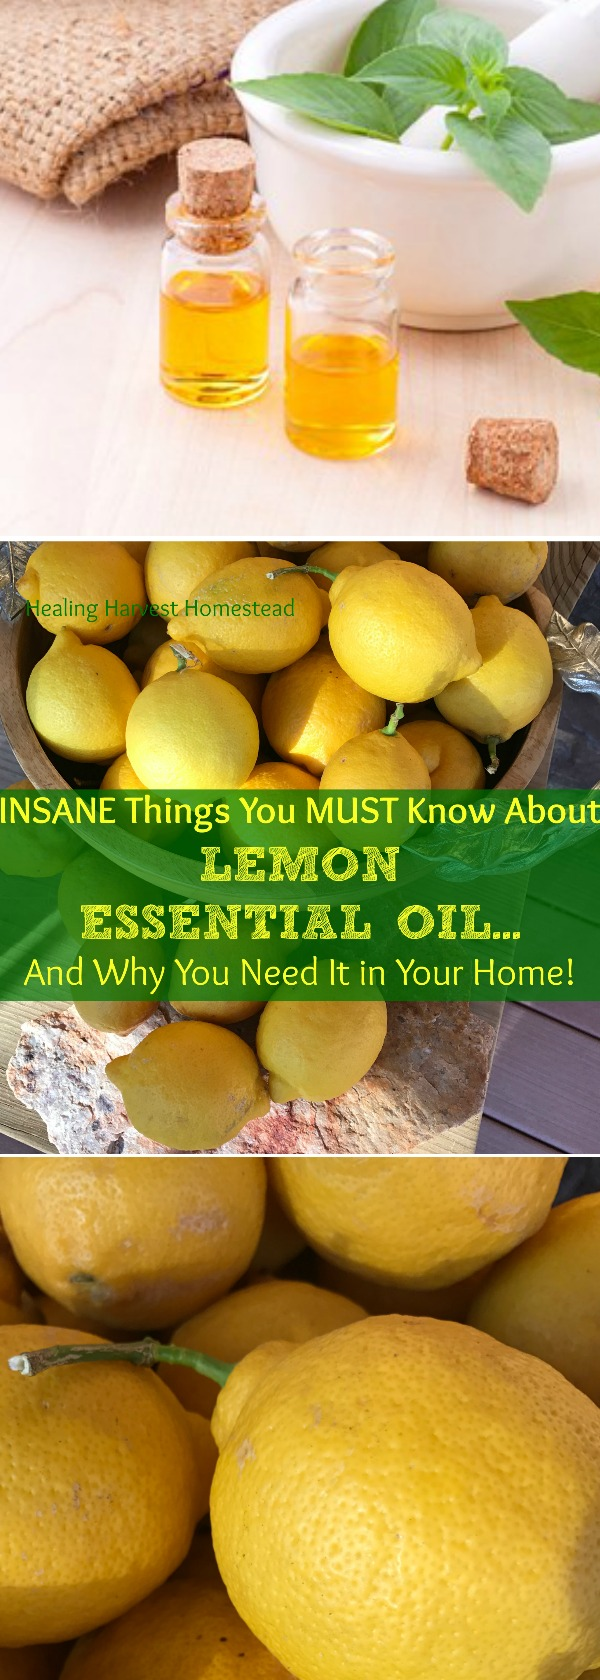 Lemon Essential Oil smells happy and just plain wonderful. But besides the many aromatherapy benefits, it has multitudes of additional uses! It's also a relatively inexpensive essential oil. Find out why you need it in your home!